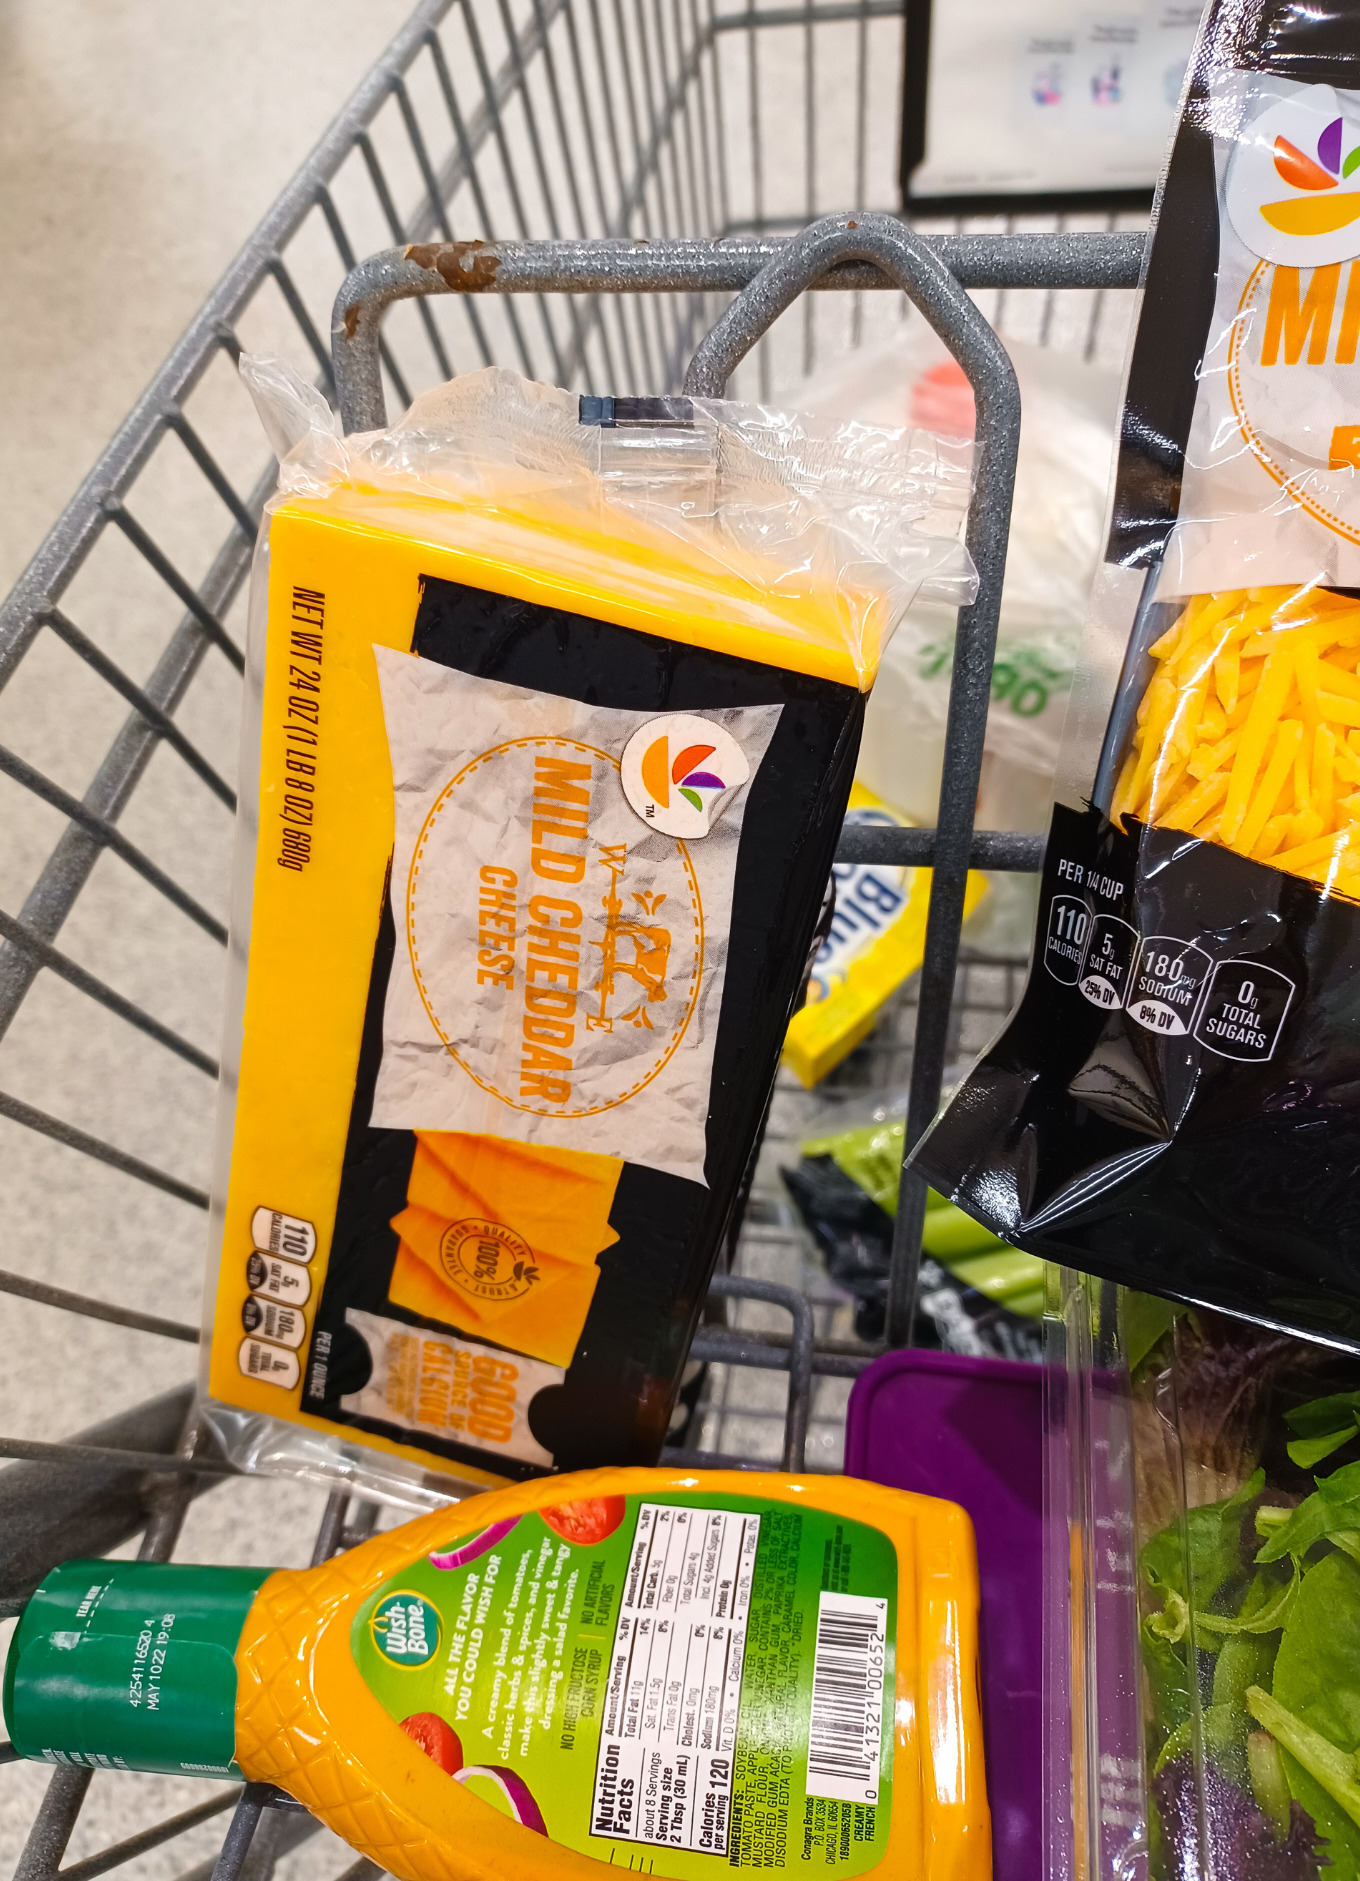 A grocery cart of mild cheddar cheese